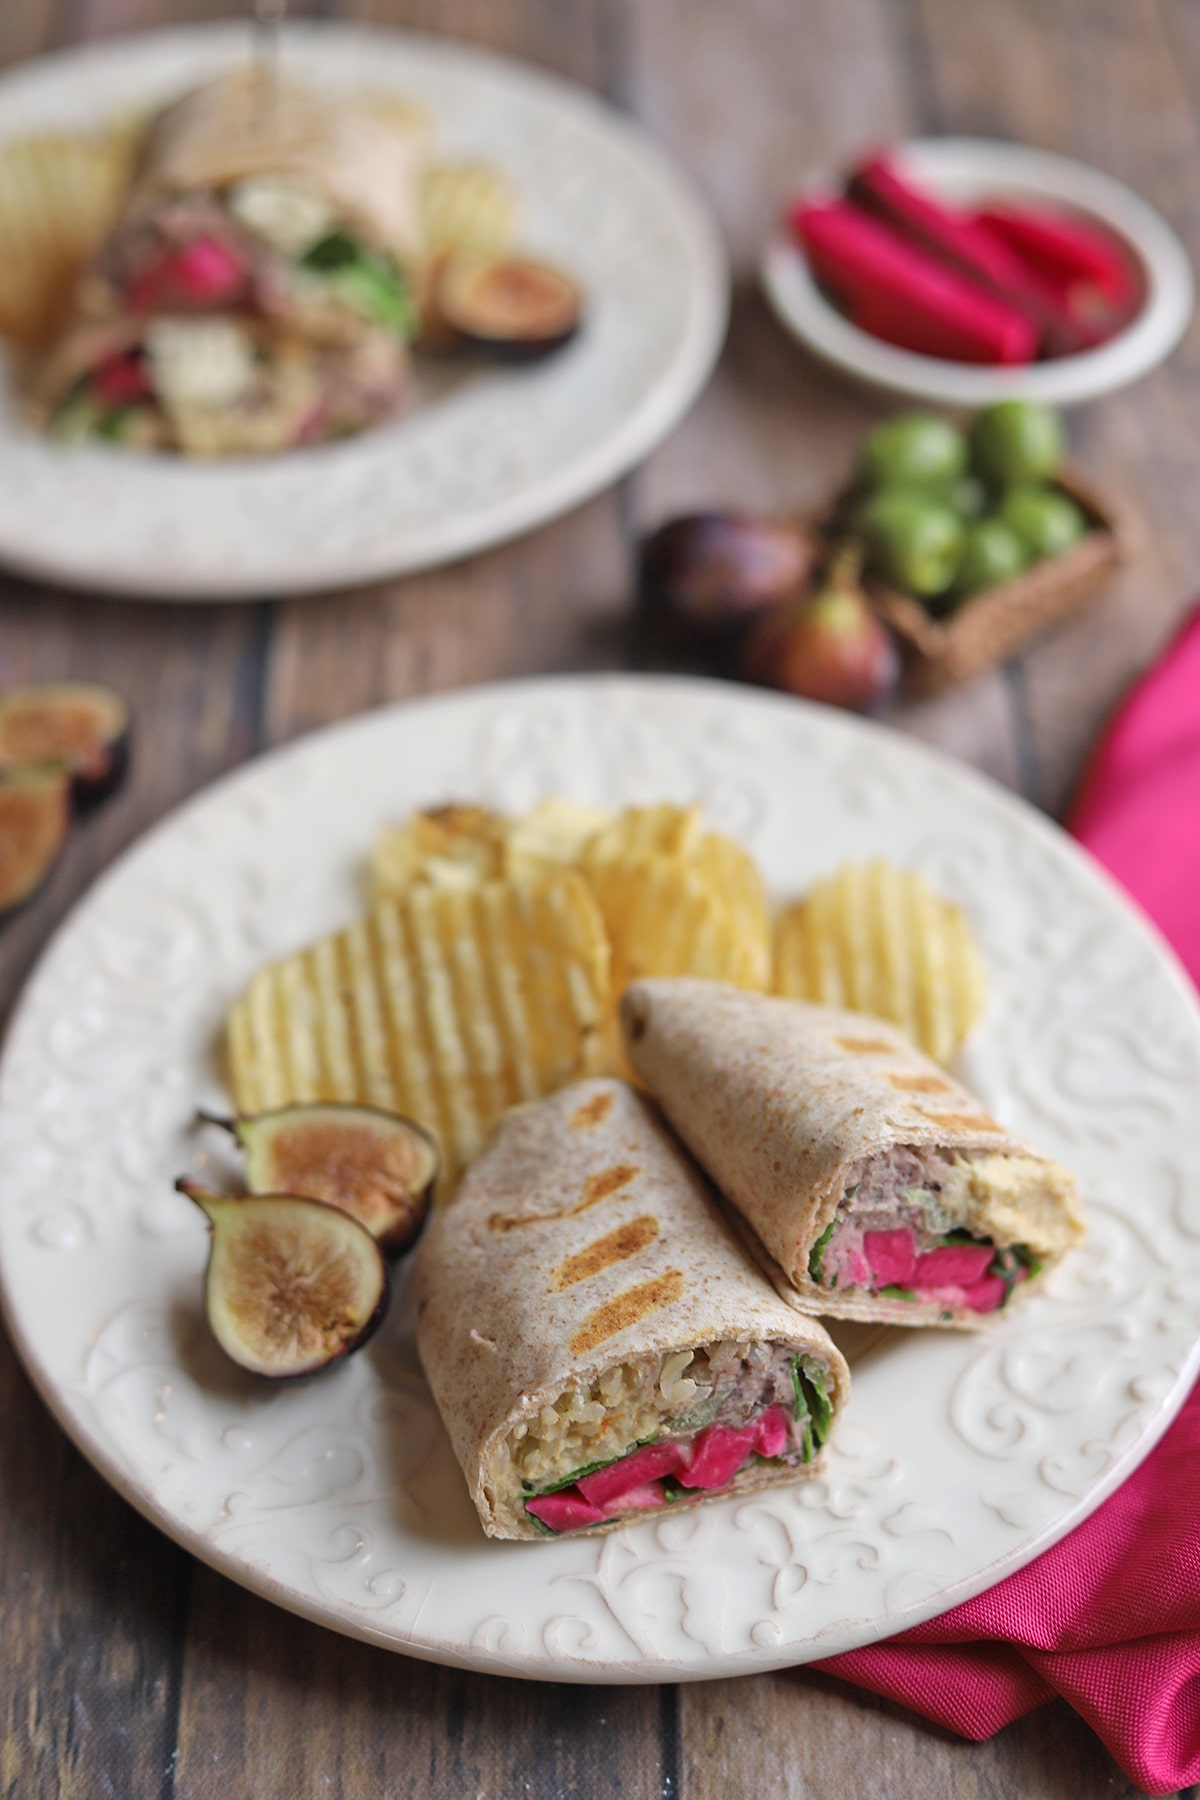 Wraps on plates with potato chips.